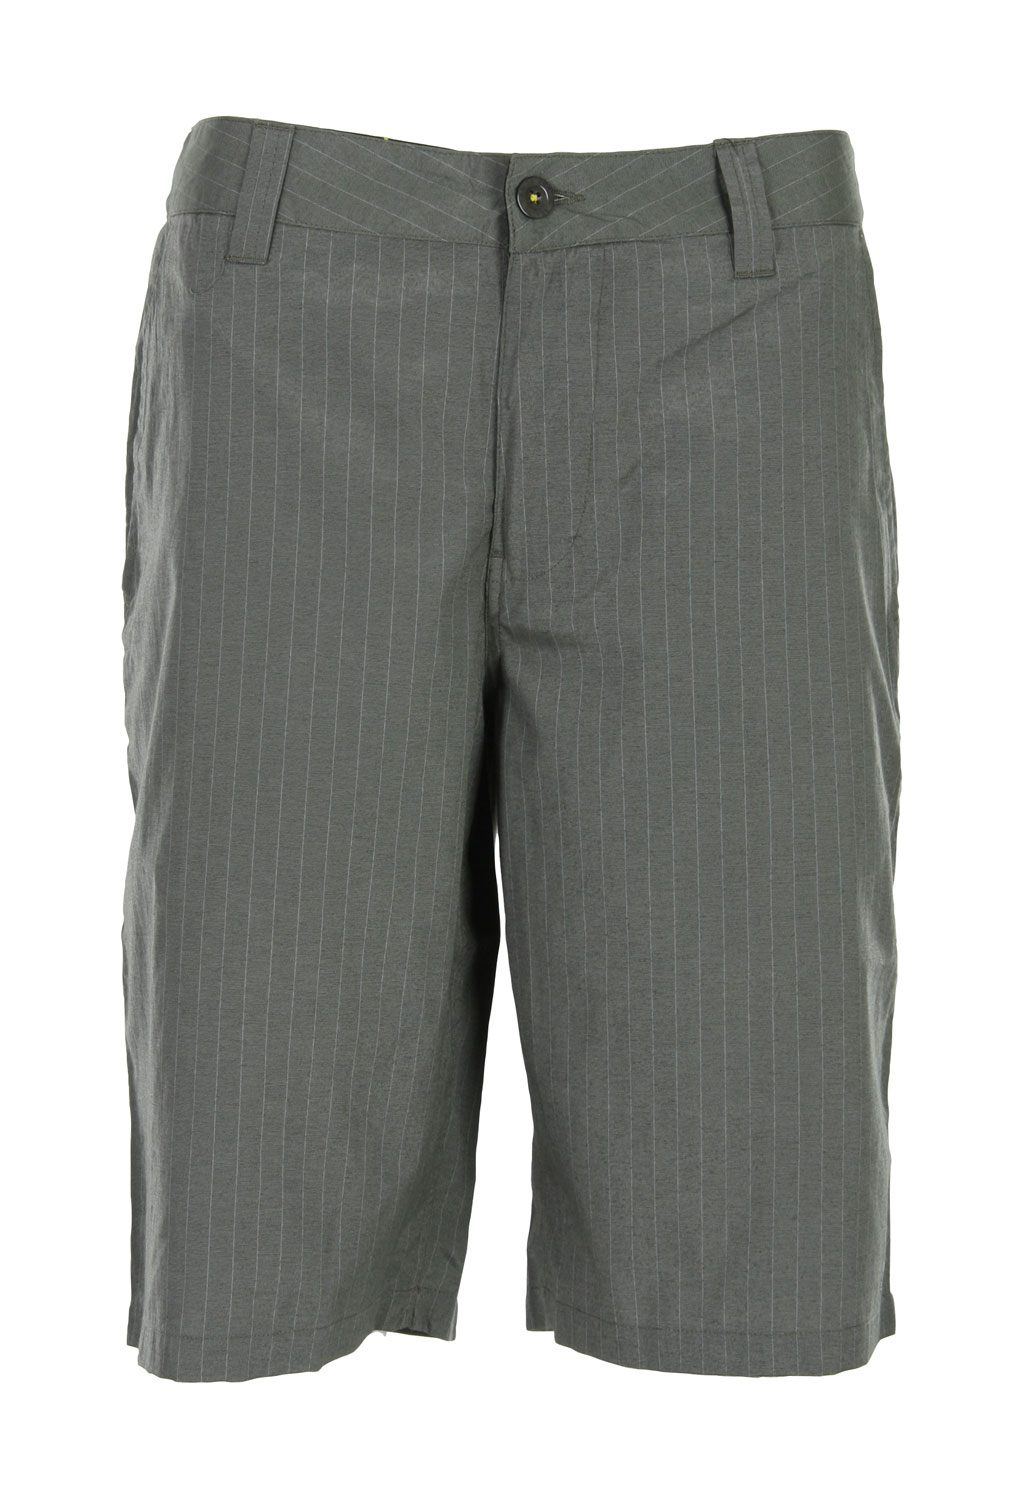 "Quite stylish and perfect for a walk around the block or a walk into town, a pair of Analog Moreno Walking Shorts belongs in the wardrobe of any fashion-savvy male with a taste for the good-life. Tops in quality and comfort, the Analog Moreno Walking Short features a Chino fit, classic cotton/polyester construction, and a printed inner waistband, making these the ideal partner to a variety of sporting shirts and tops. With so many attractive features, it's no wonder they sell out fast.Key Features of the Analog Moreno Walking Shorts: Chino Fit 23"" Outseam 55% Cotton 45% Polyester Pin Stripe Yarn Dye Printed Inner Waistband And Pocket Bags - $14.95"